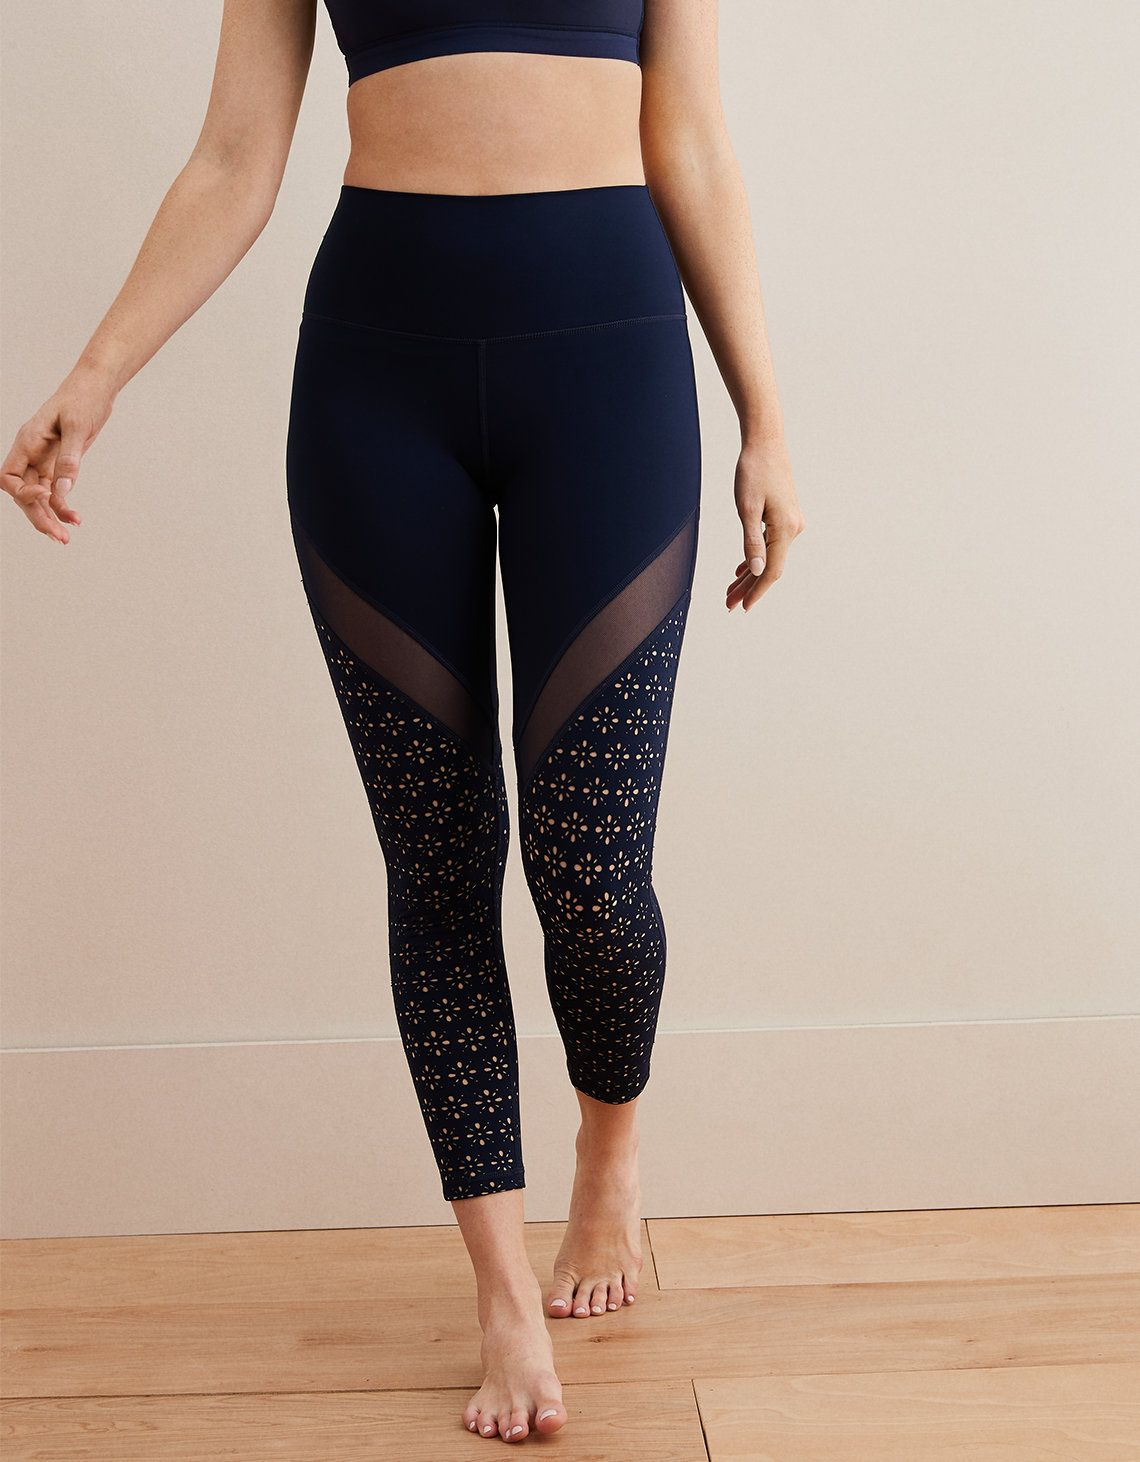 f11f7086f8955 Aerie Move High Waisted 7/8 Legging, Navy in 2019 | ACTUAL WISHLIST ...